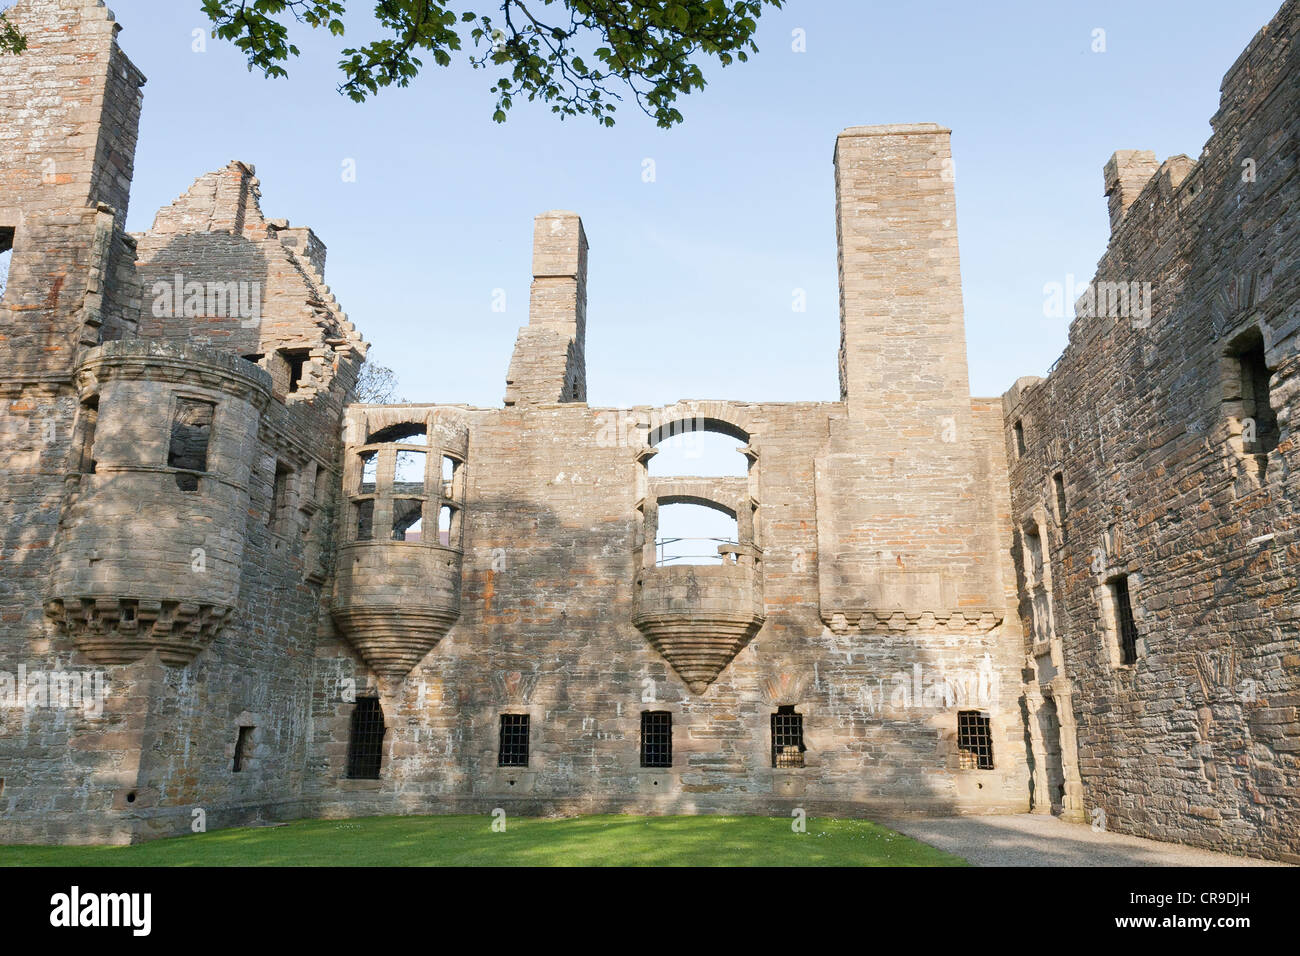 Earl's Palace, Kirkwall, Orkney Isles, Scotland - Stock Image